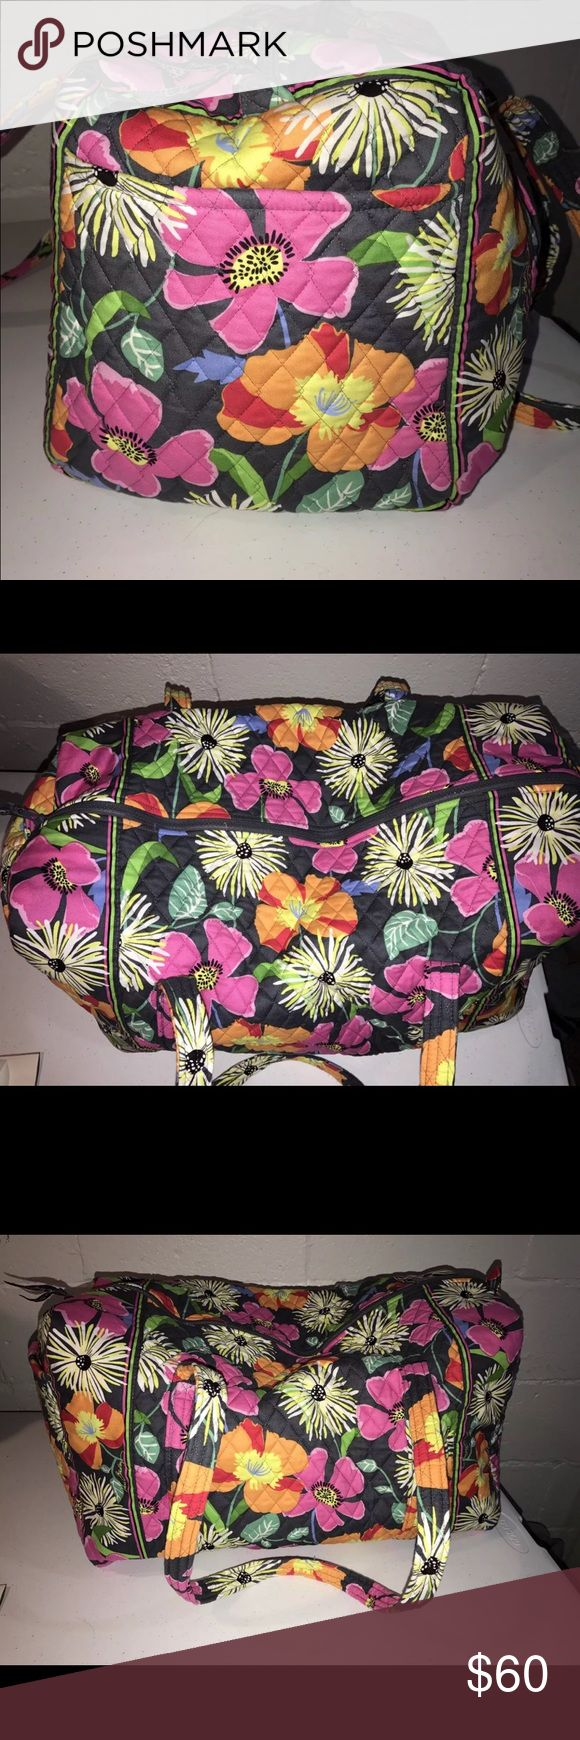 "Vera Bradley Duffel Bag 22"" w x 11 ½"" h x 11 ½"" d with 15"" strap drop Excellent condition. Never used. Vera Bradley Bags Travel Bags"